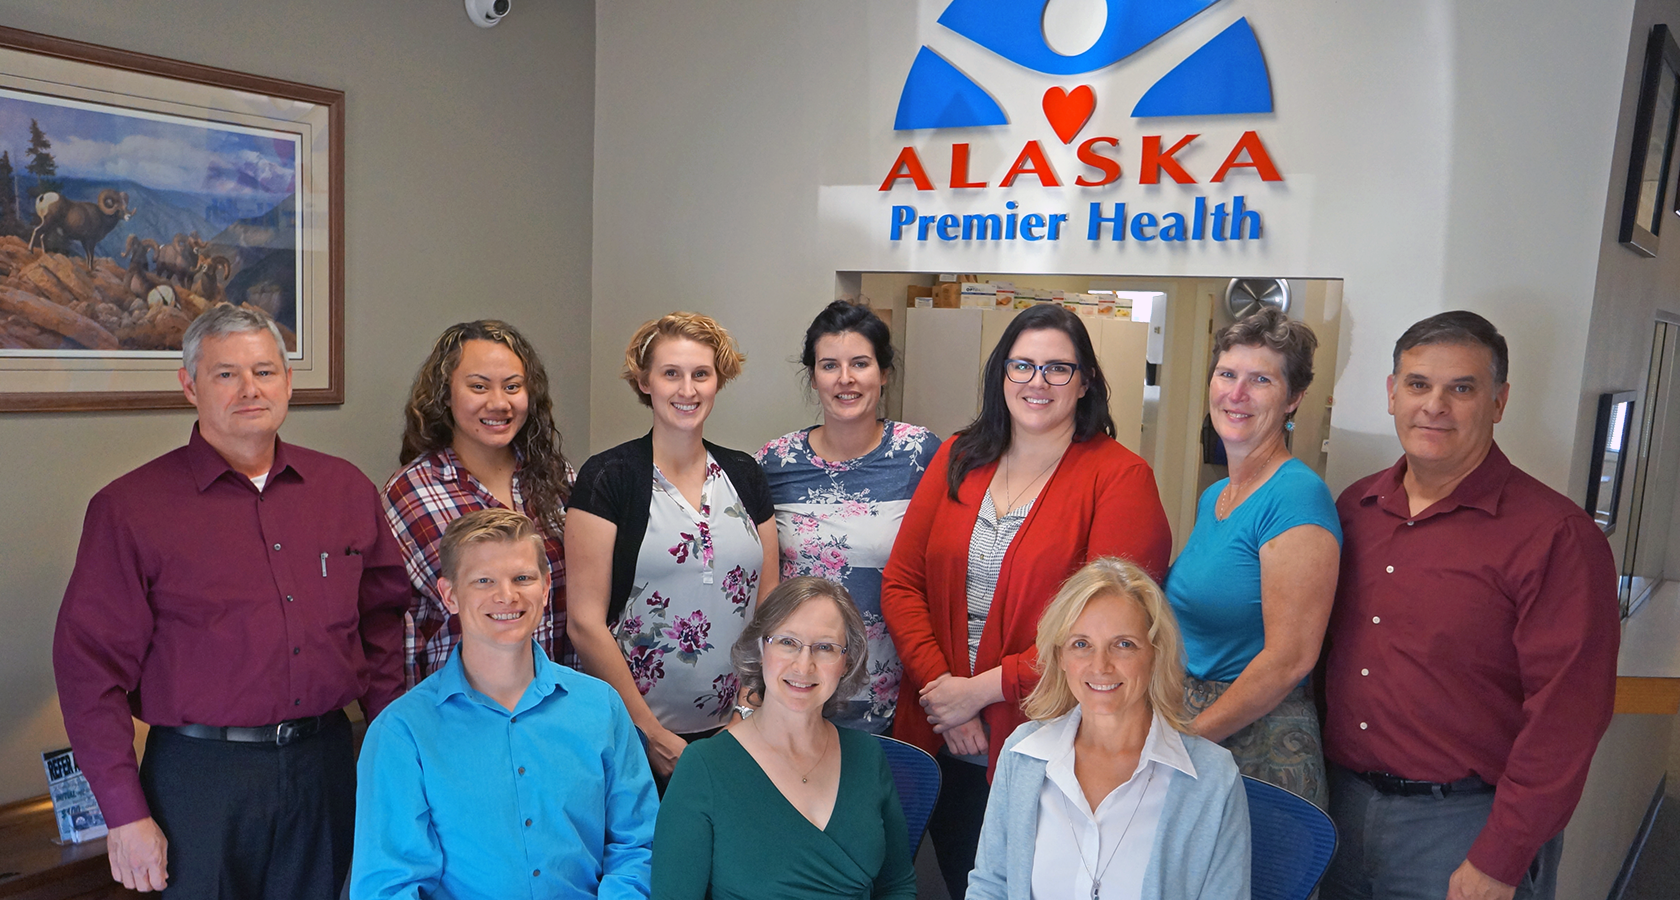 Group photo of Alaska Premier Health staff